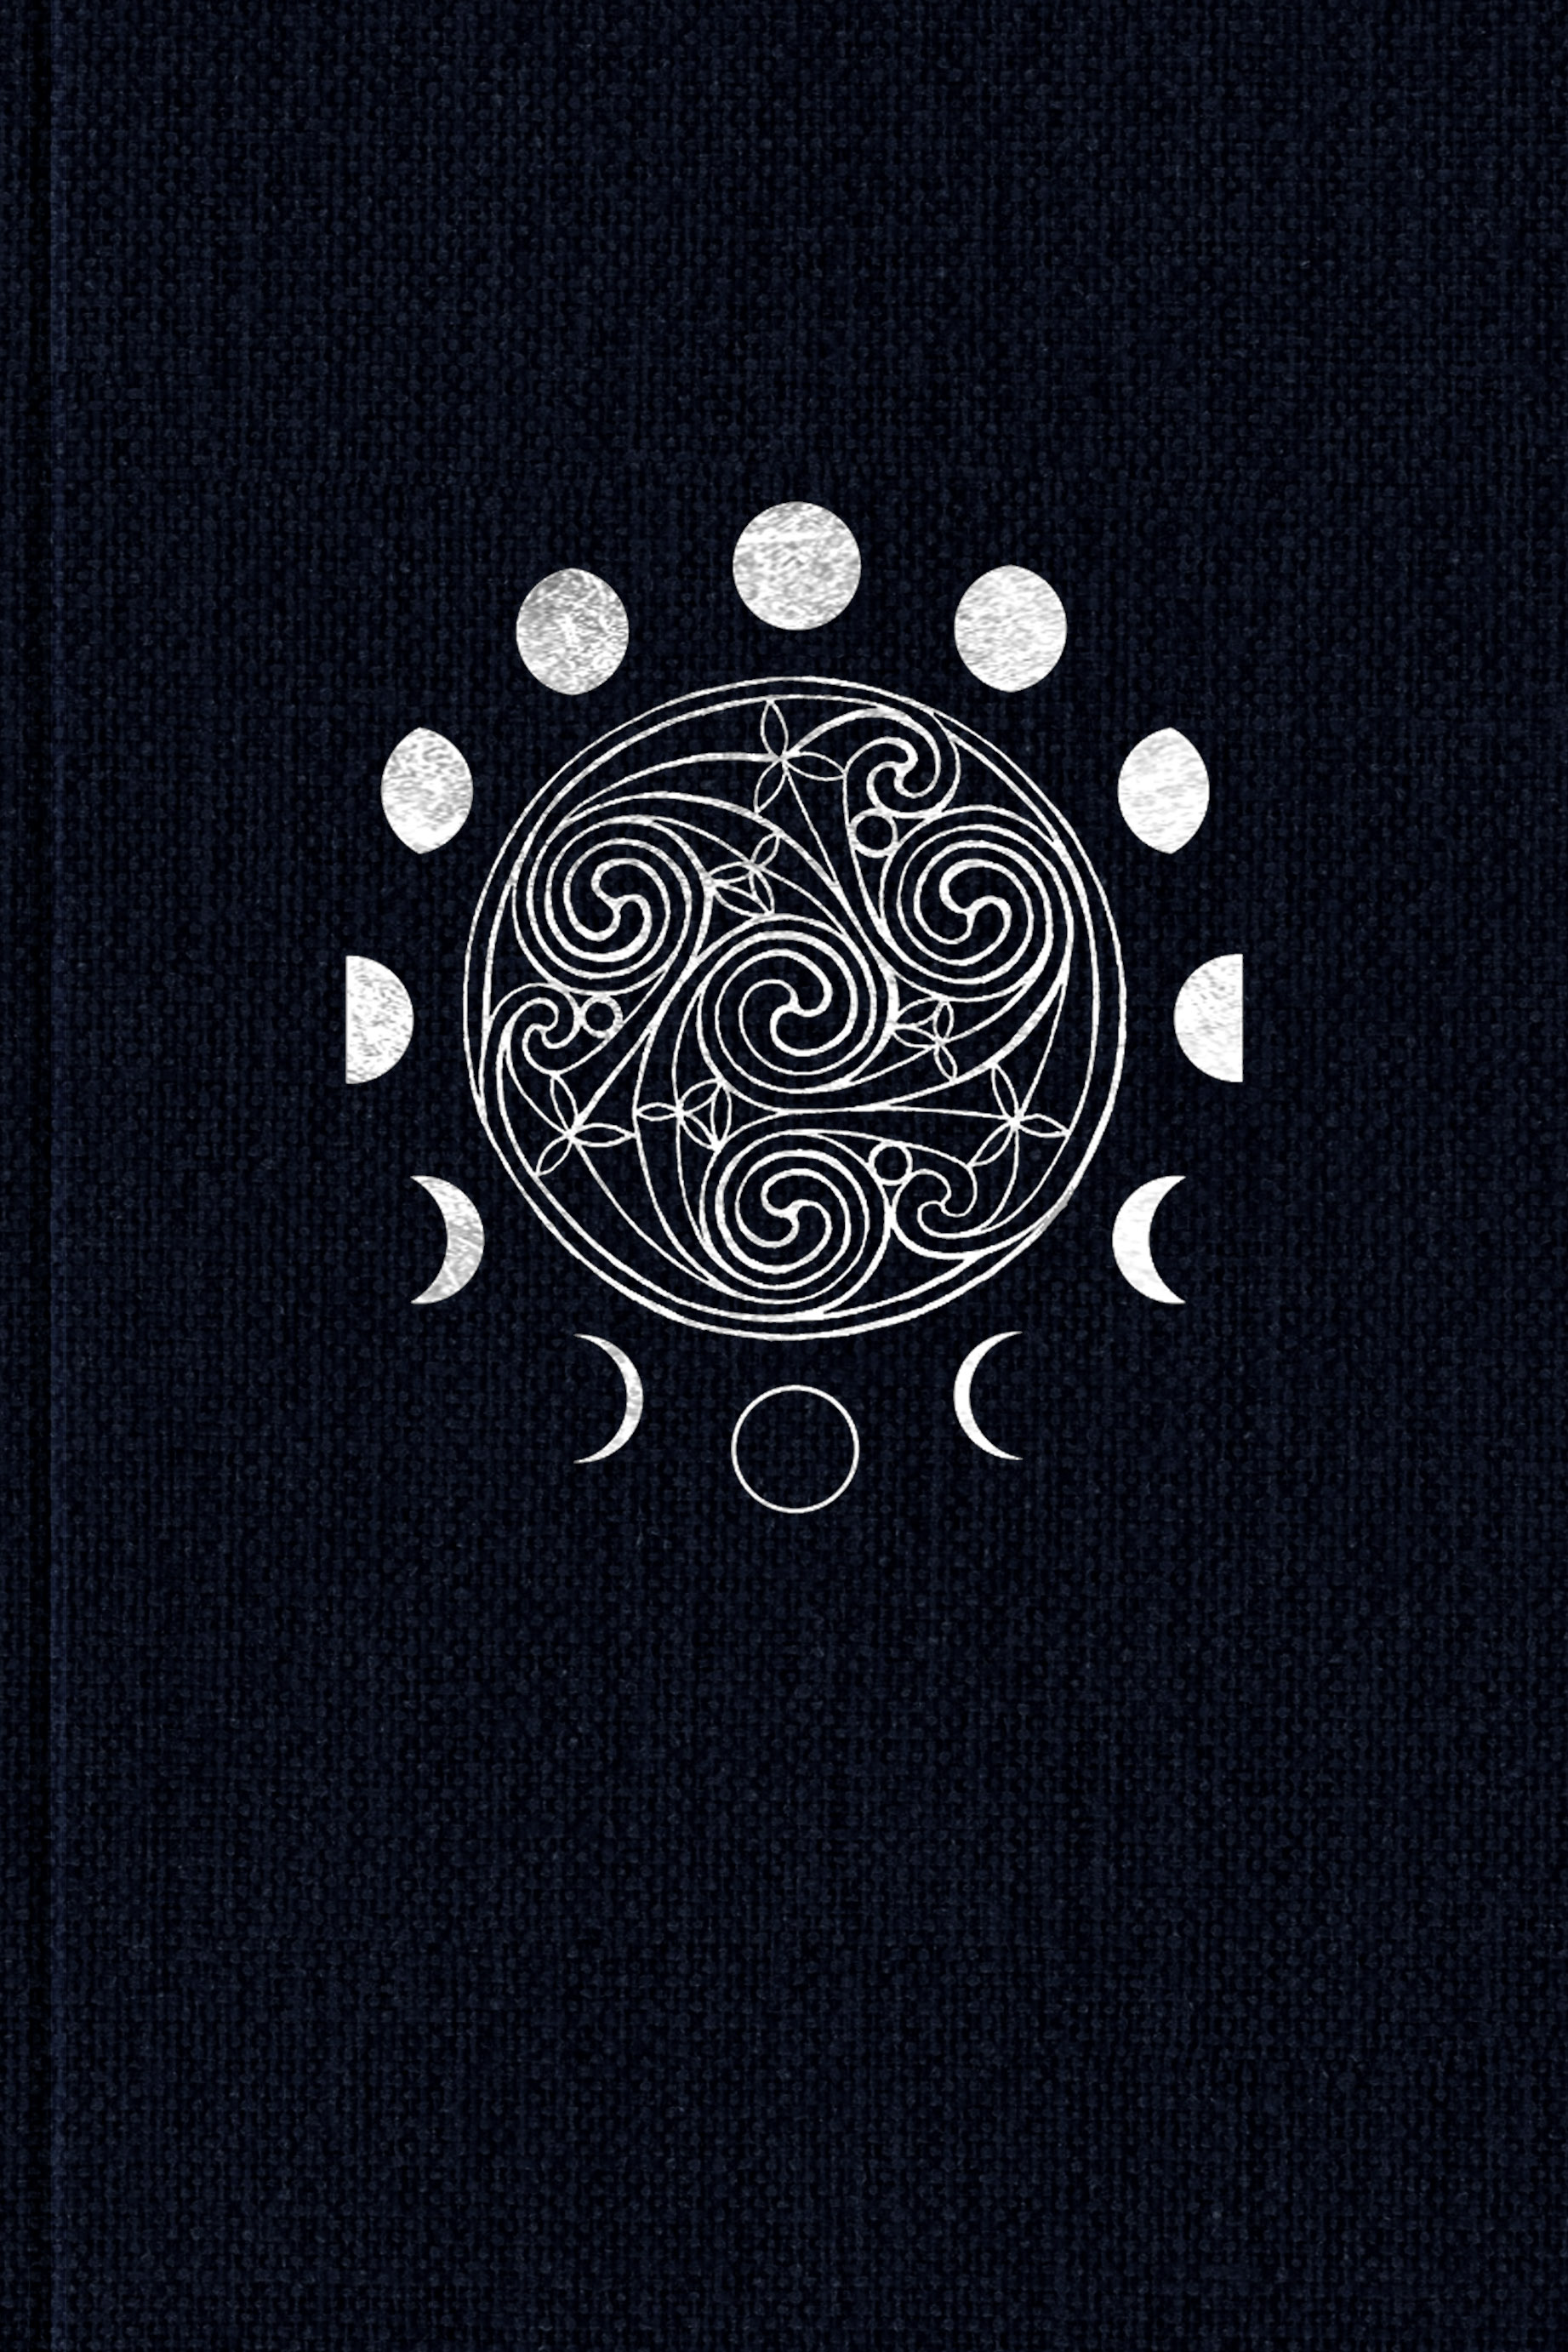 """A Ring Around the Moon: Witch Rites Revisited"", by Nigel G. Pearson. Standard Hardback edition."